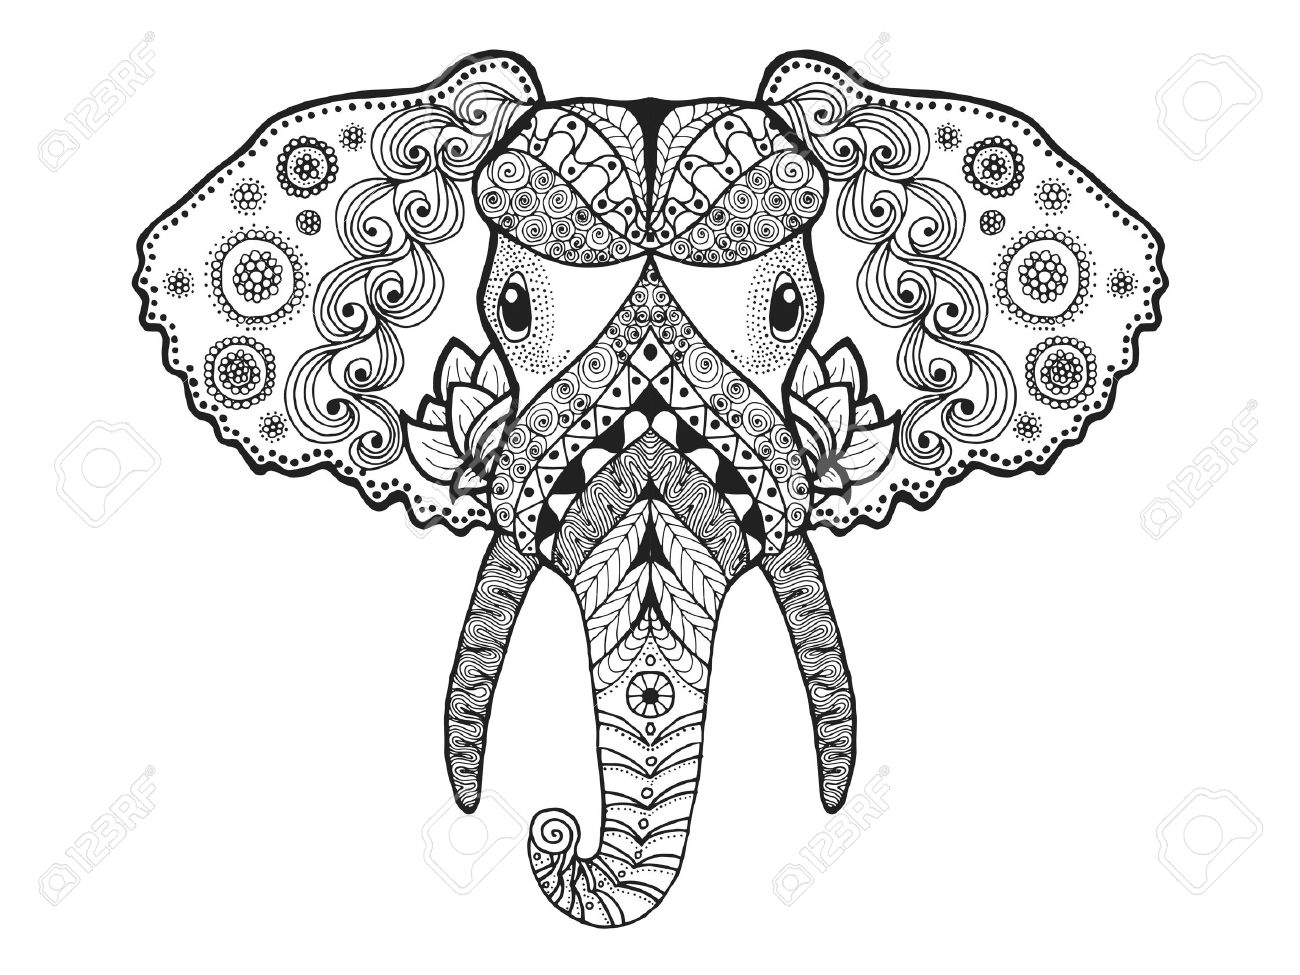 Adult Antistress Coloring Page. Black White Hand Drawn Doodle Animal ...